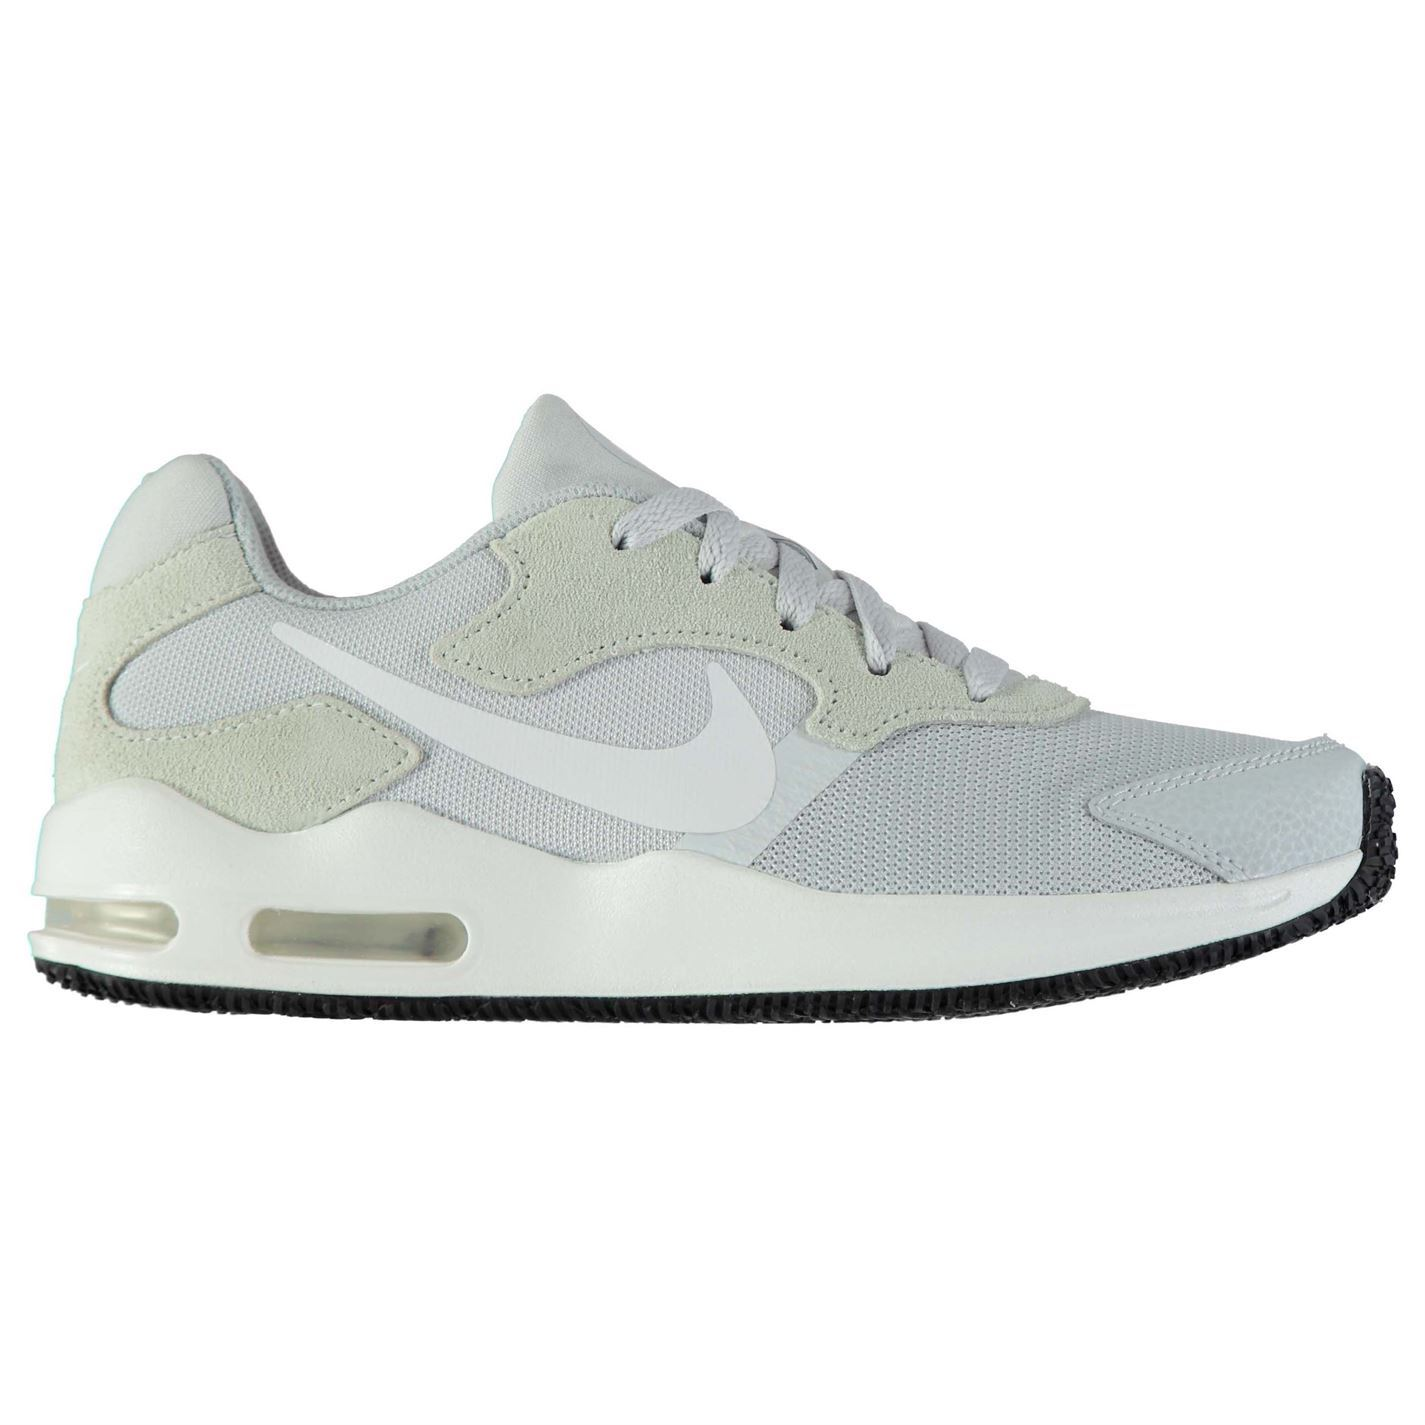 b8064dbe11 ... Nike Air Max Guile Trainers Womens Platinum/White Sports Trainers  Sneakers ...